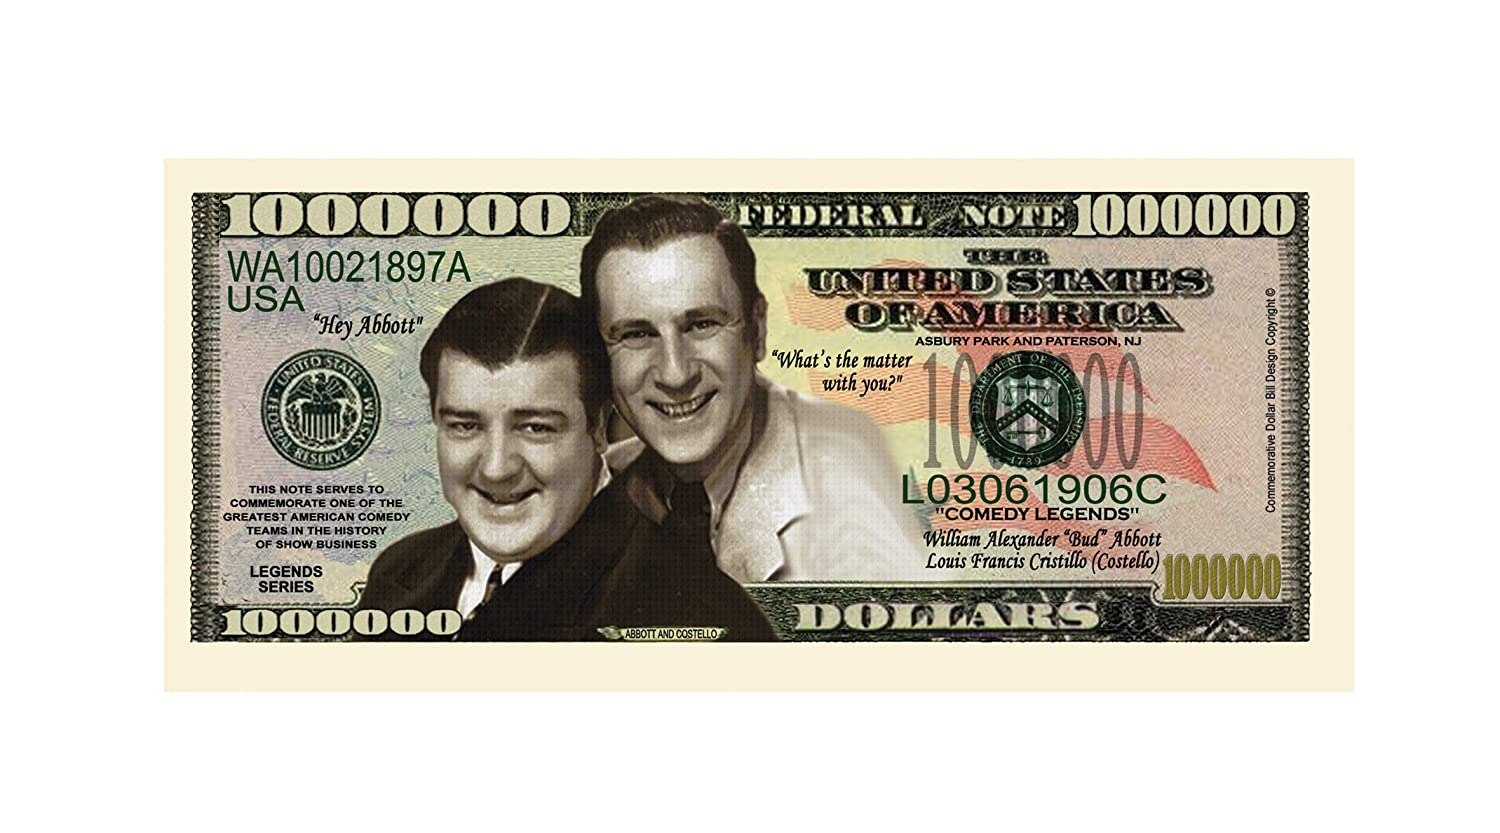 American Art Classics Abbott and Costello Million Dollar Bill Comes in Bill Protector for Fans of This Comedy Duo